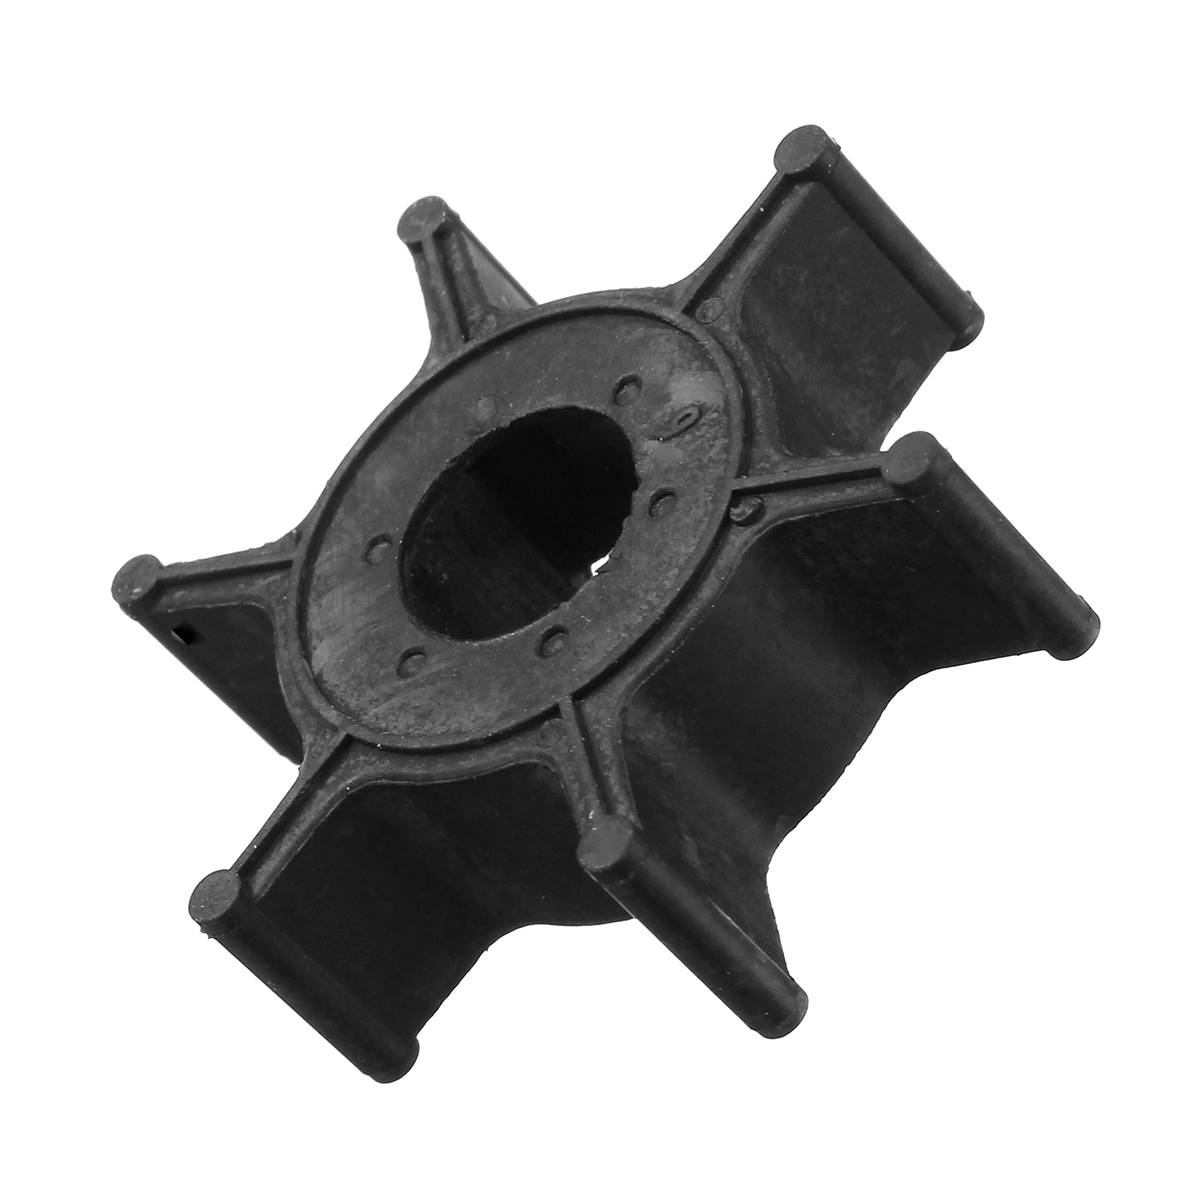 Impeller for Tohatsu Nissan Mercury Mariner 4hp 5hp 6hp Outboard Motors